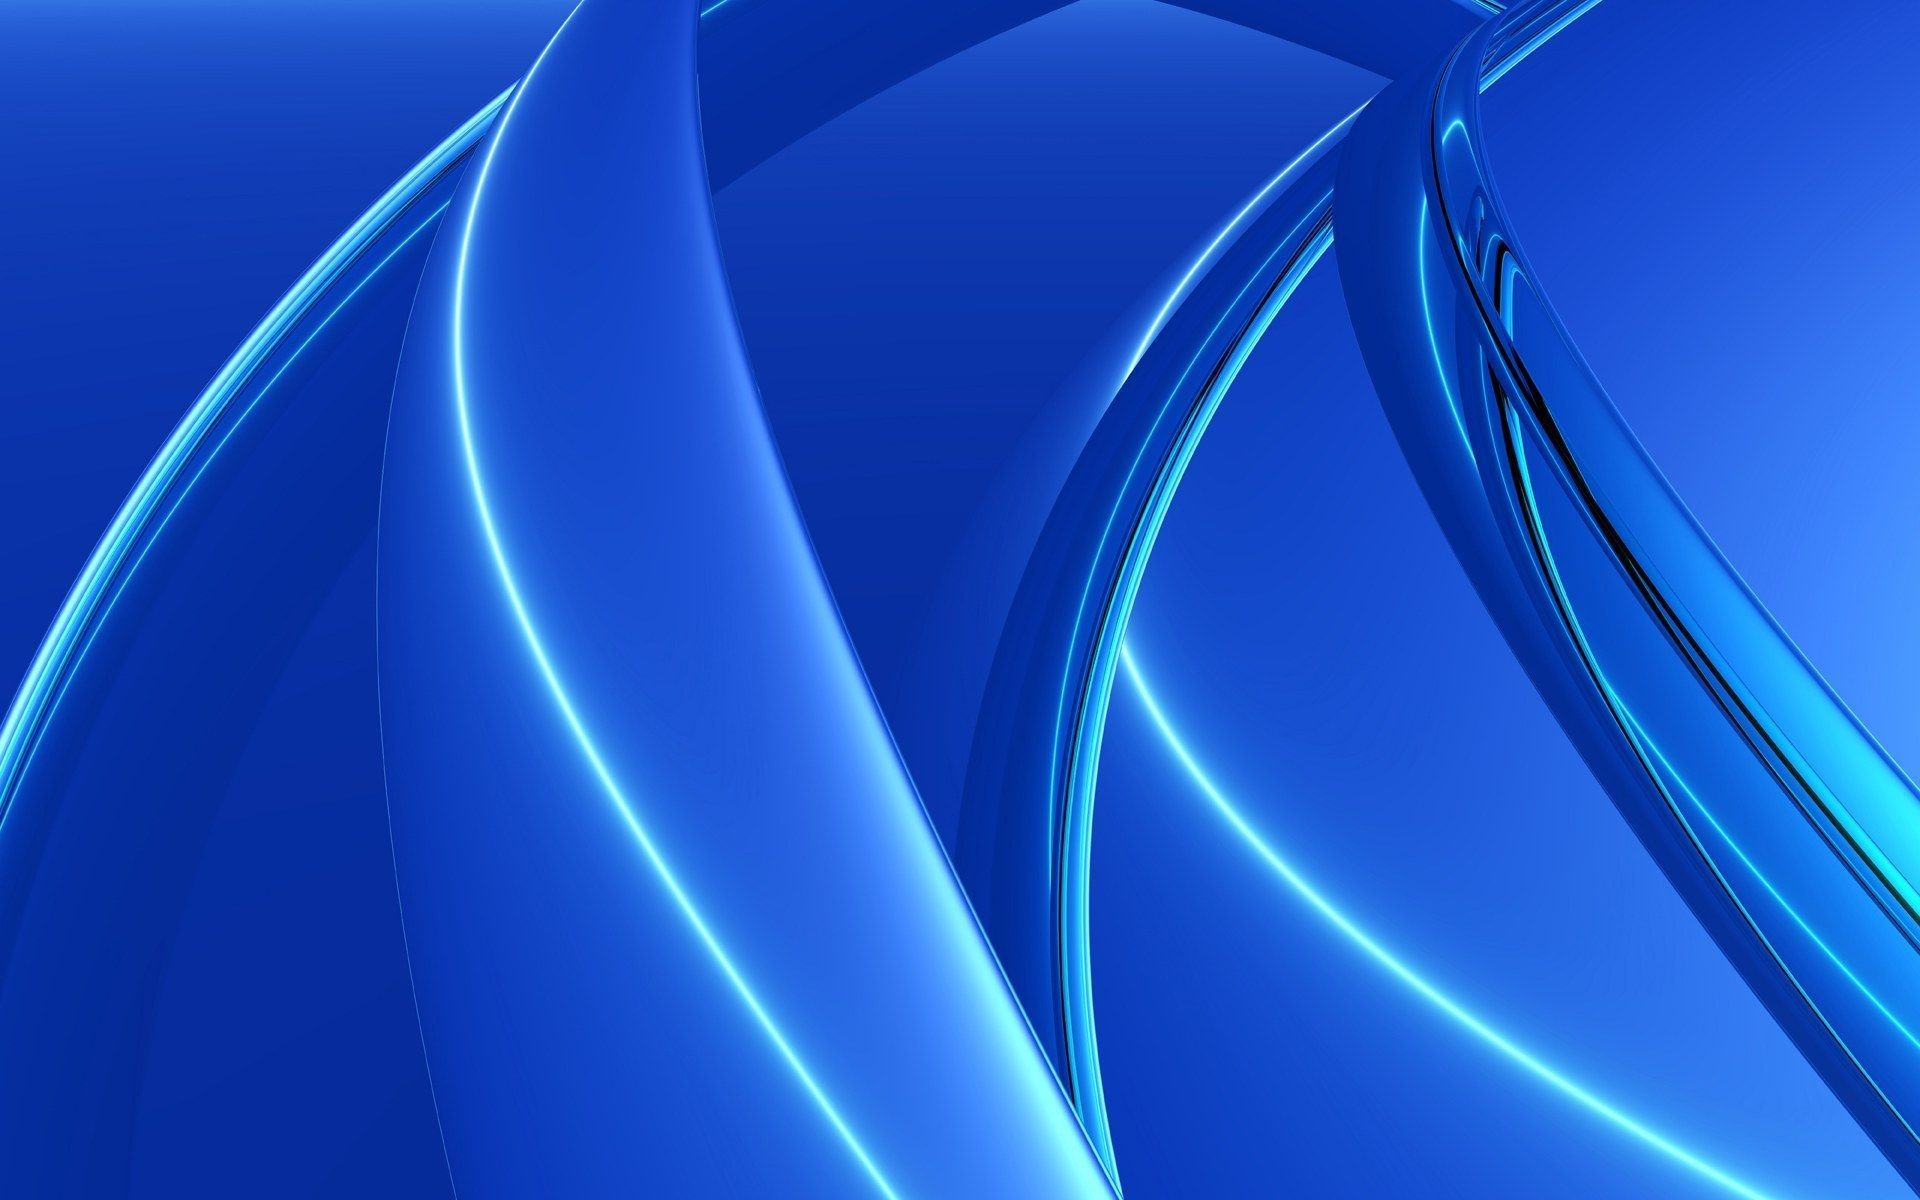 Royal Blue Background ·① Download Free HD Wallpapers For Desktop, Mobile, Laptop In Any